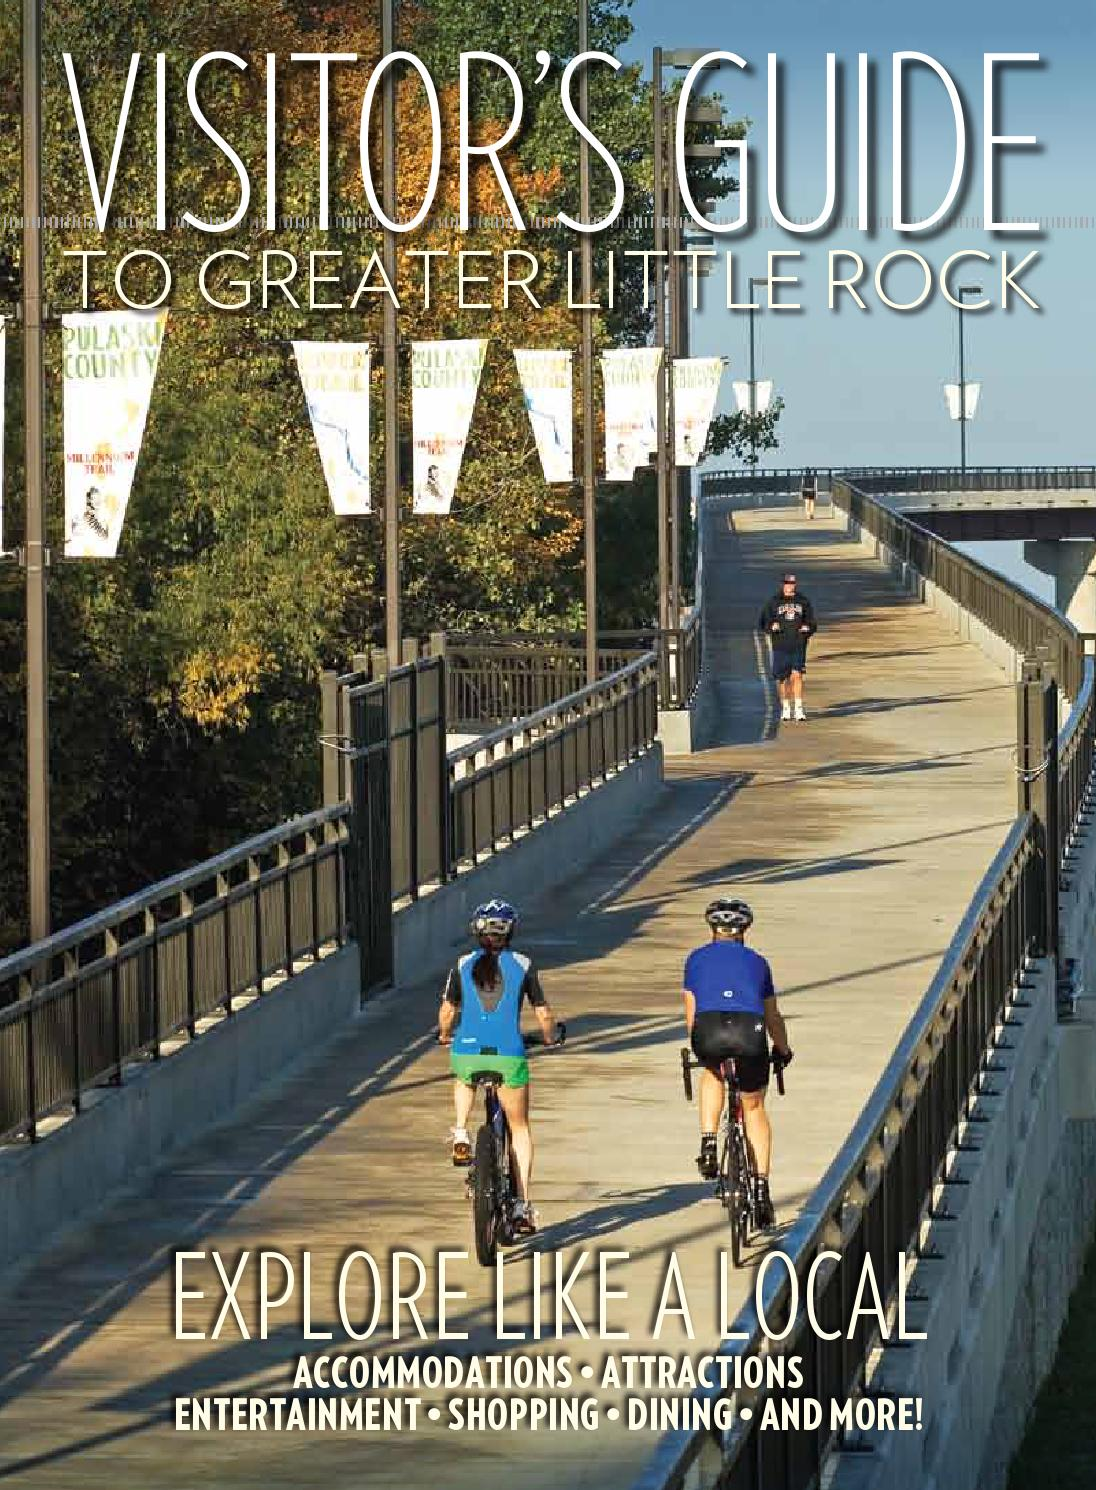 Visitors Guide 2014 By Arkansas Times Issuu Parcel Kristal Pja 1642